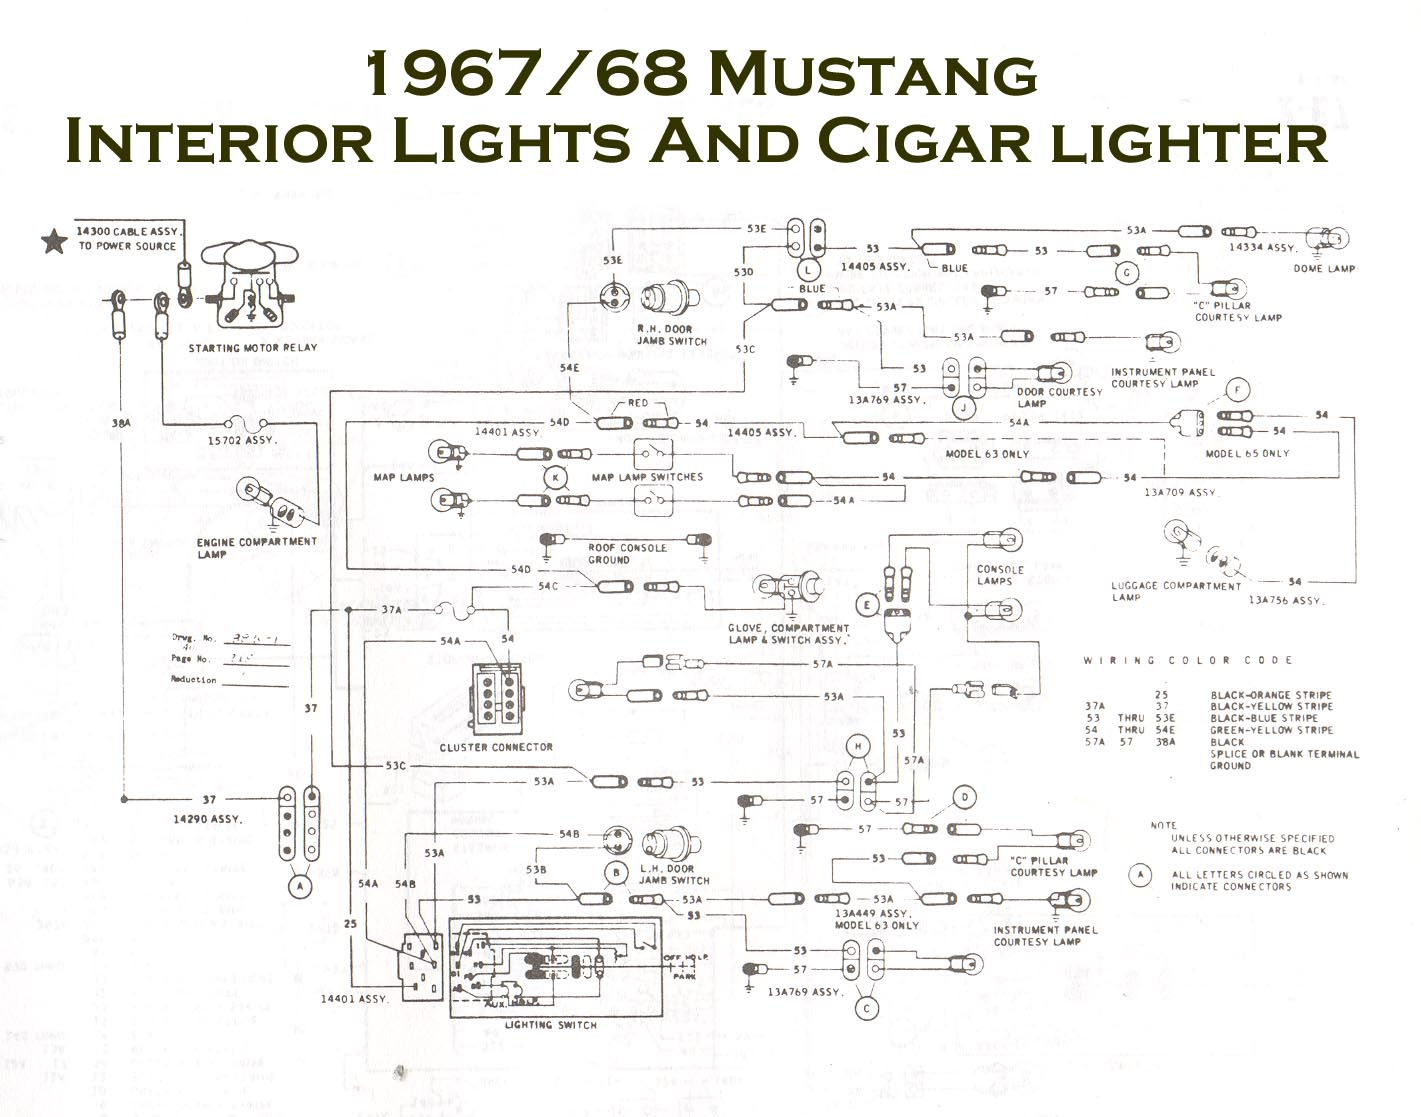 Vintage Mustang Wiring Diagrams Ford Radio Connector Diagram 1967 68 Console